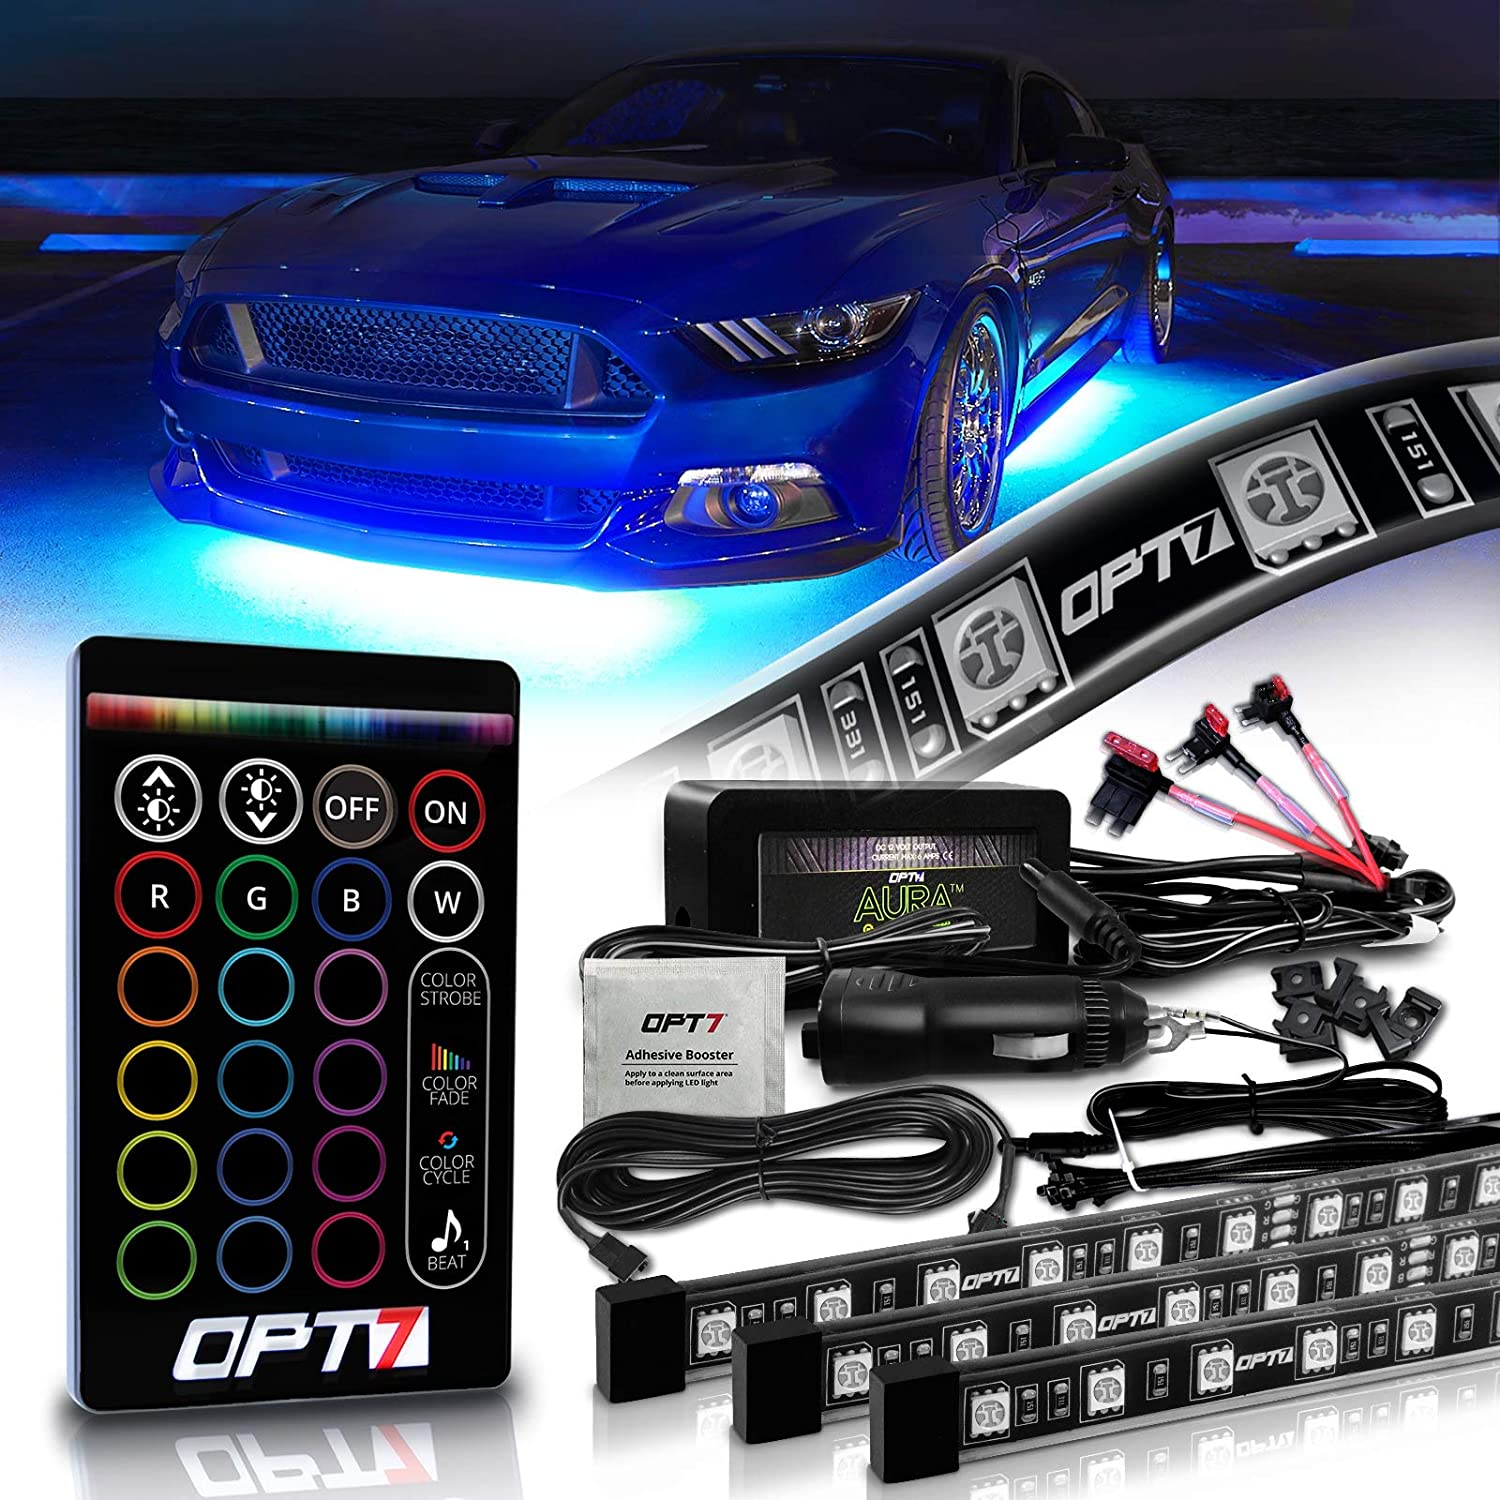 OPT7 Aura Underglow for Cars Exterior Under Glow Neon Light Kit for Trucks 4pc Flexible LED Strip Lighting Kit Soundsync 2 x 48 inch + 2 x 36 inch w//Remote Full-Color Spectrum